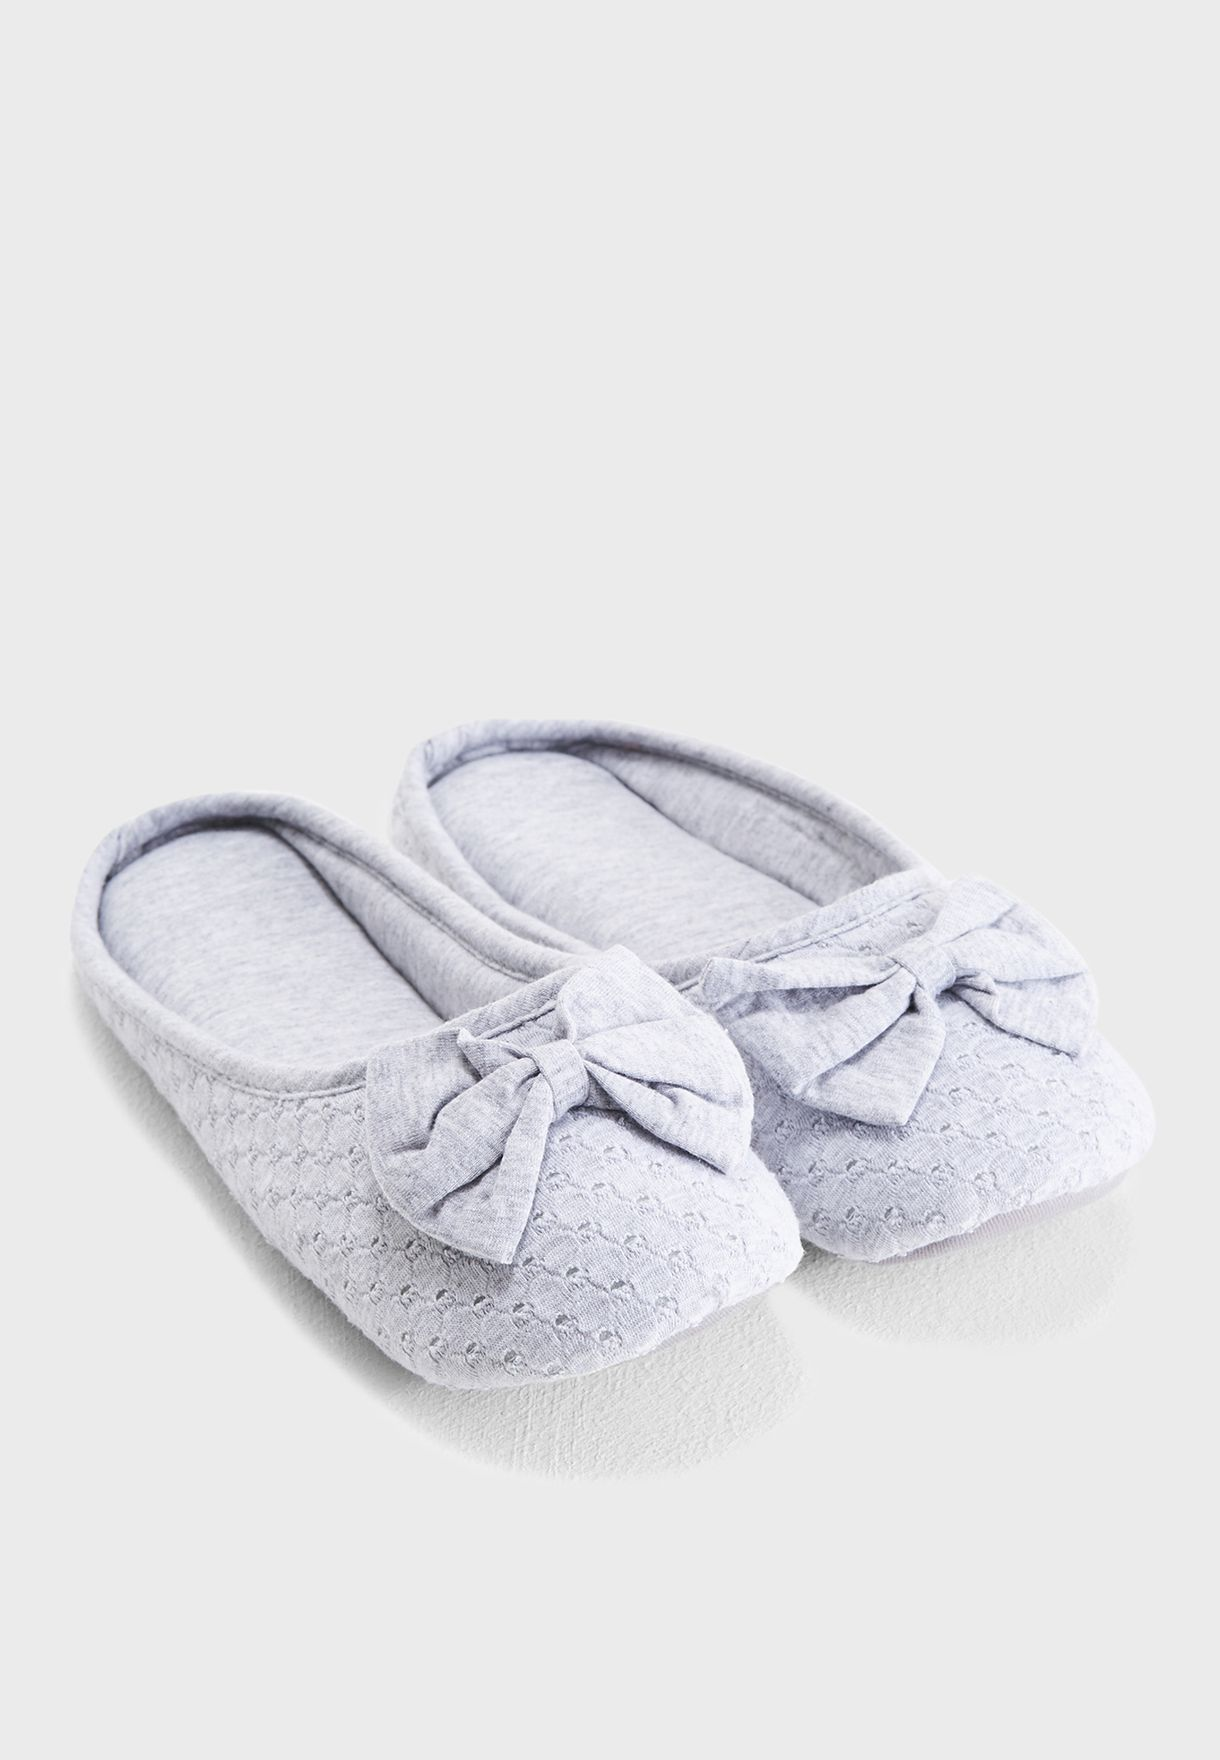 Tara Bedroom Slippers